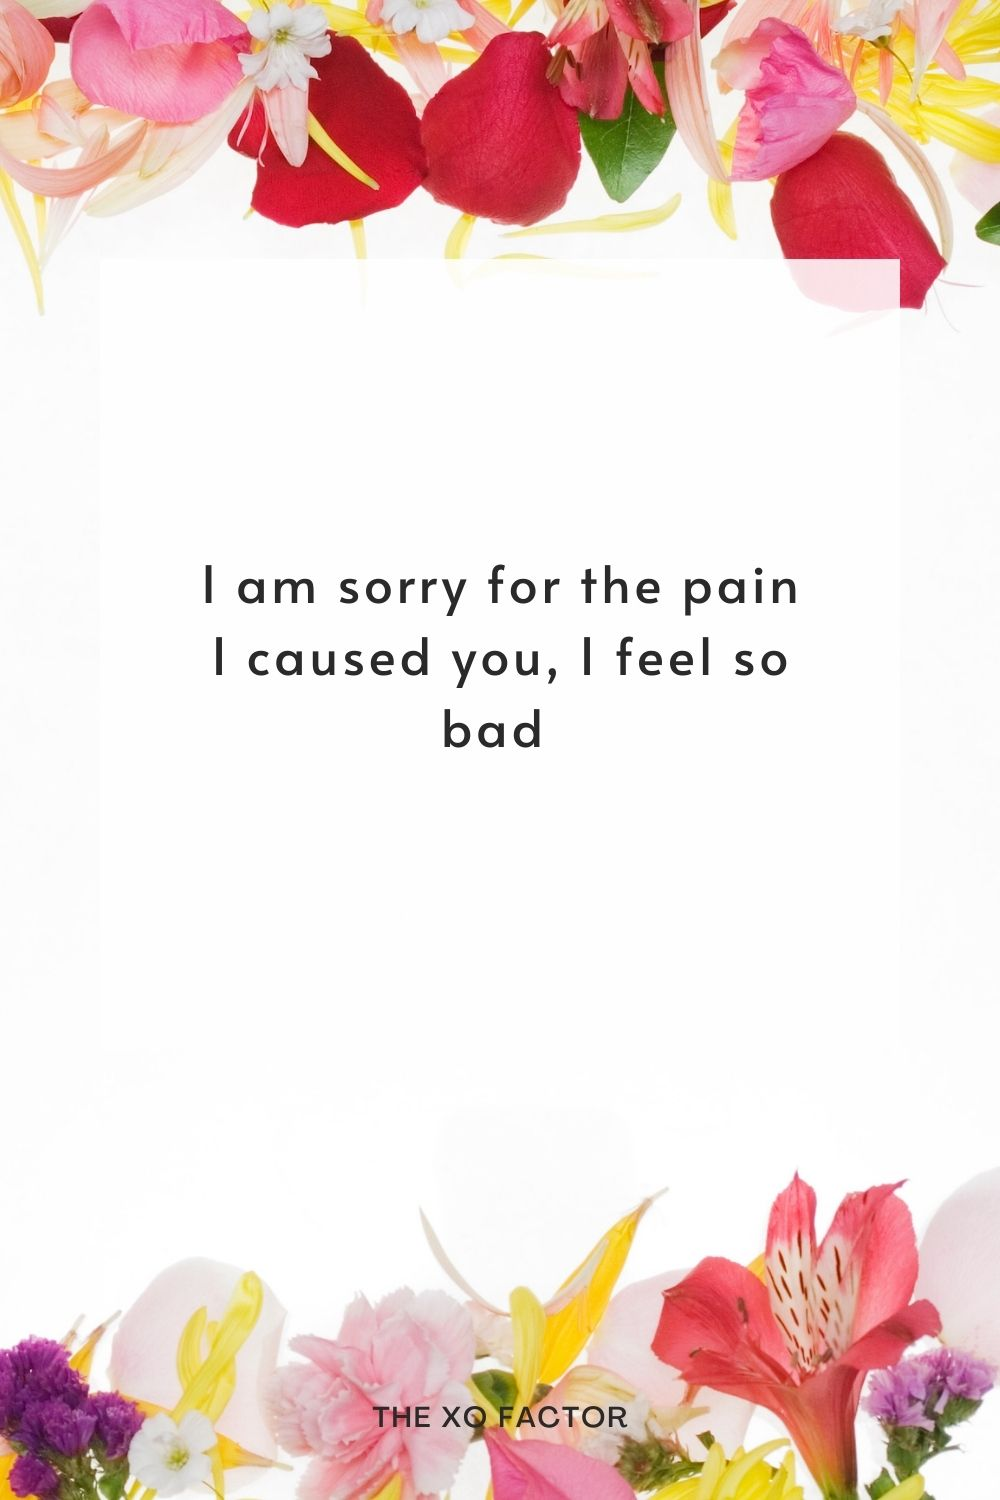 I am sorry for the pain I caused you, I feel so bad